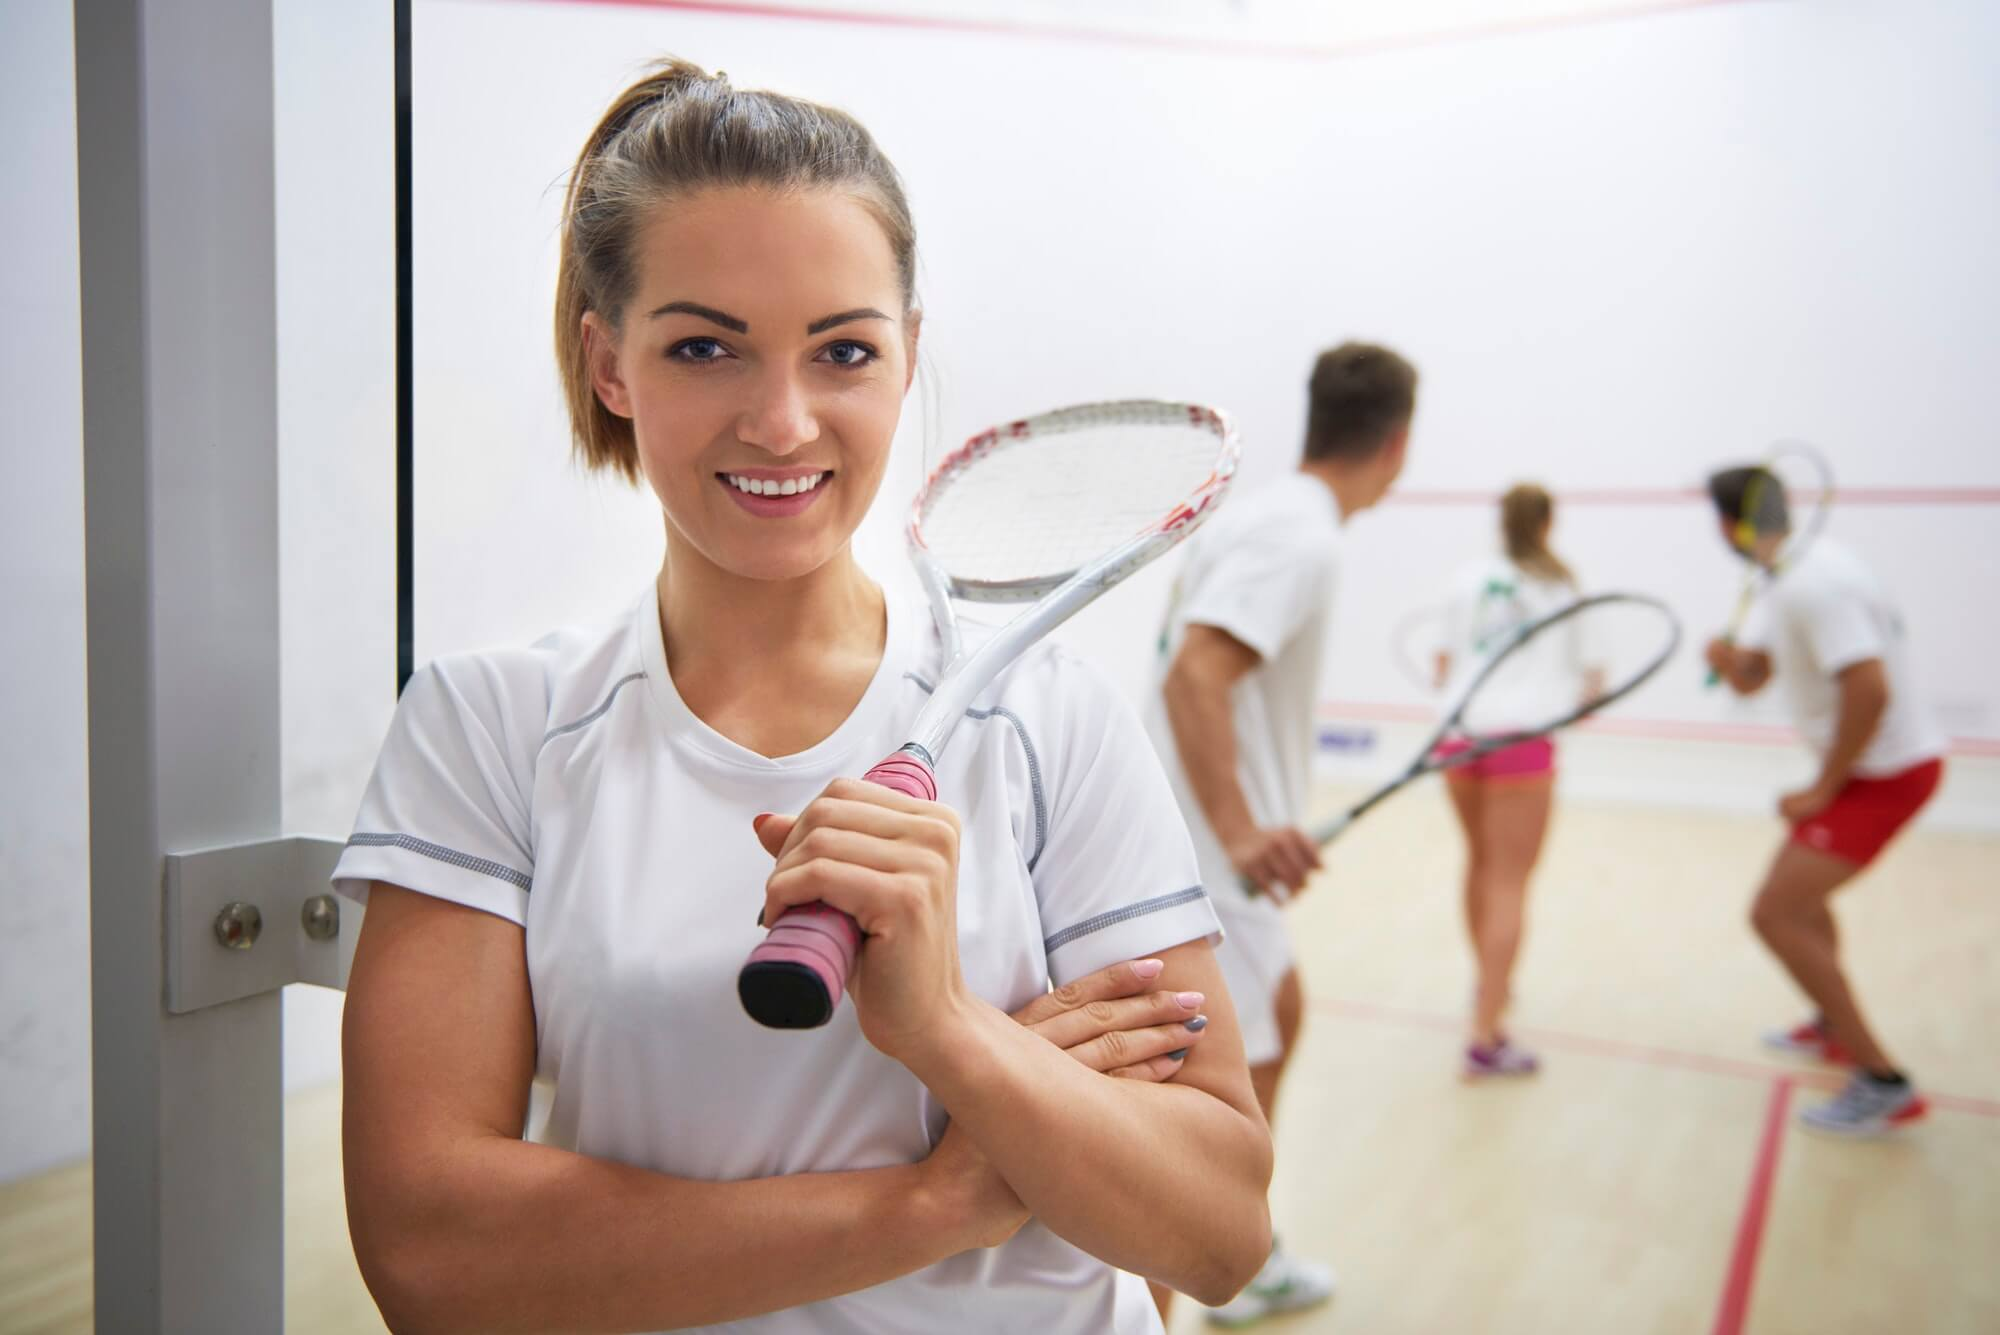 Squash player and people in the background